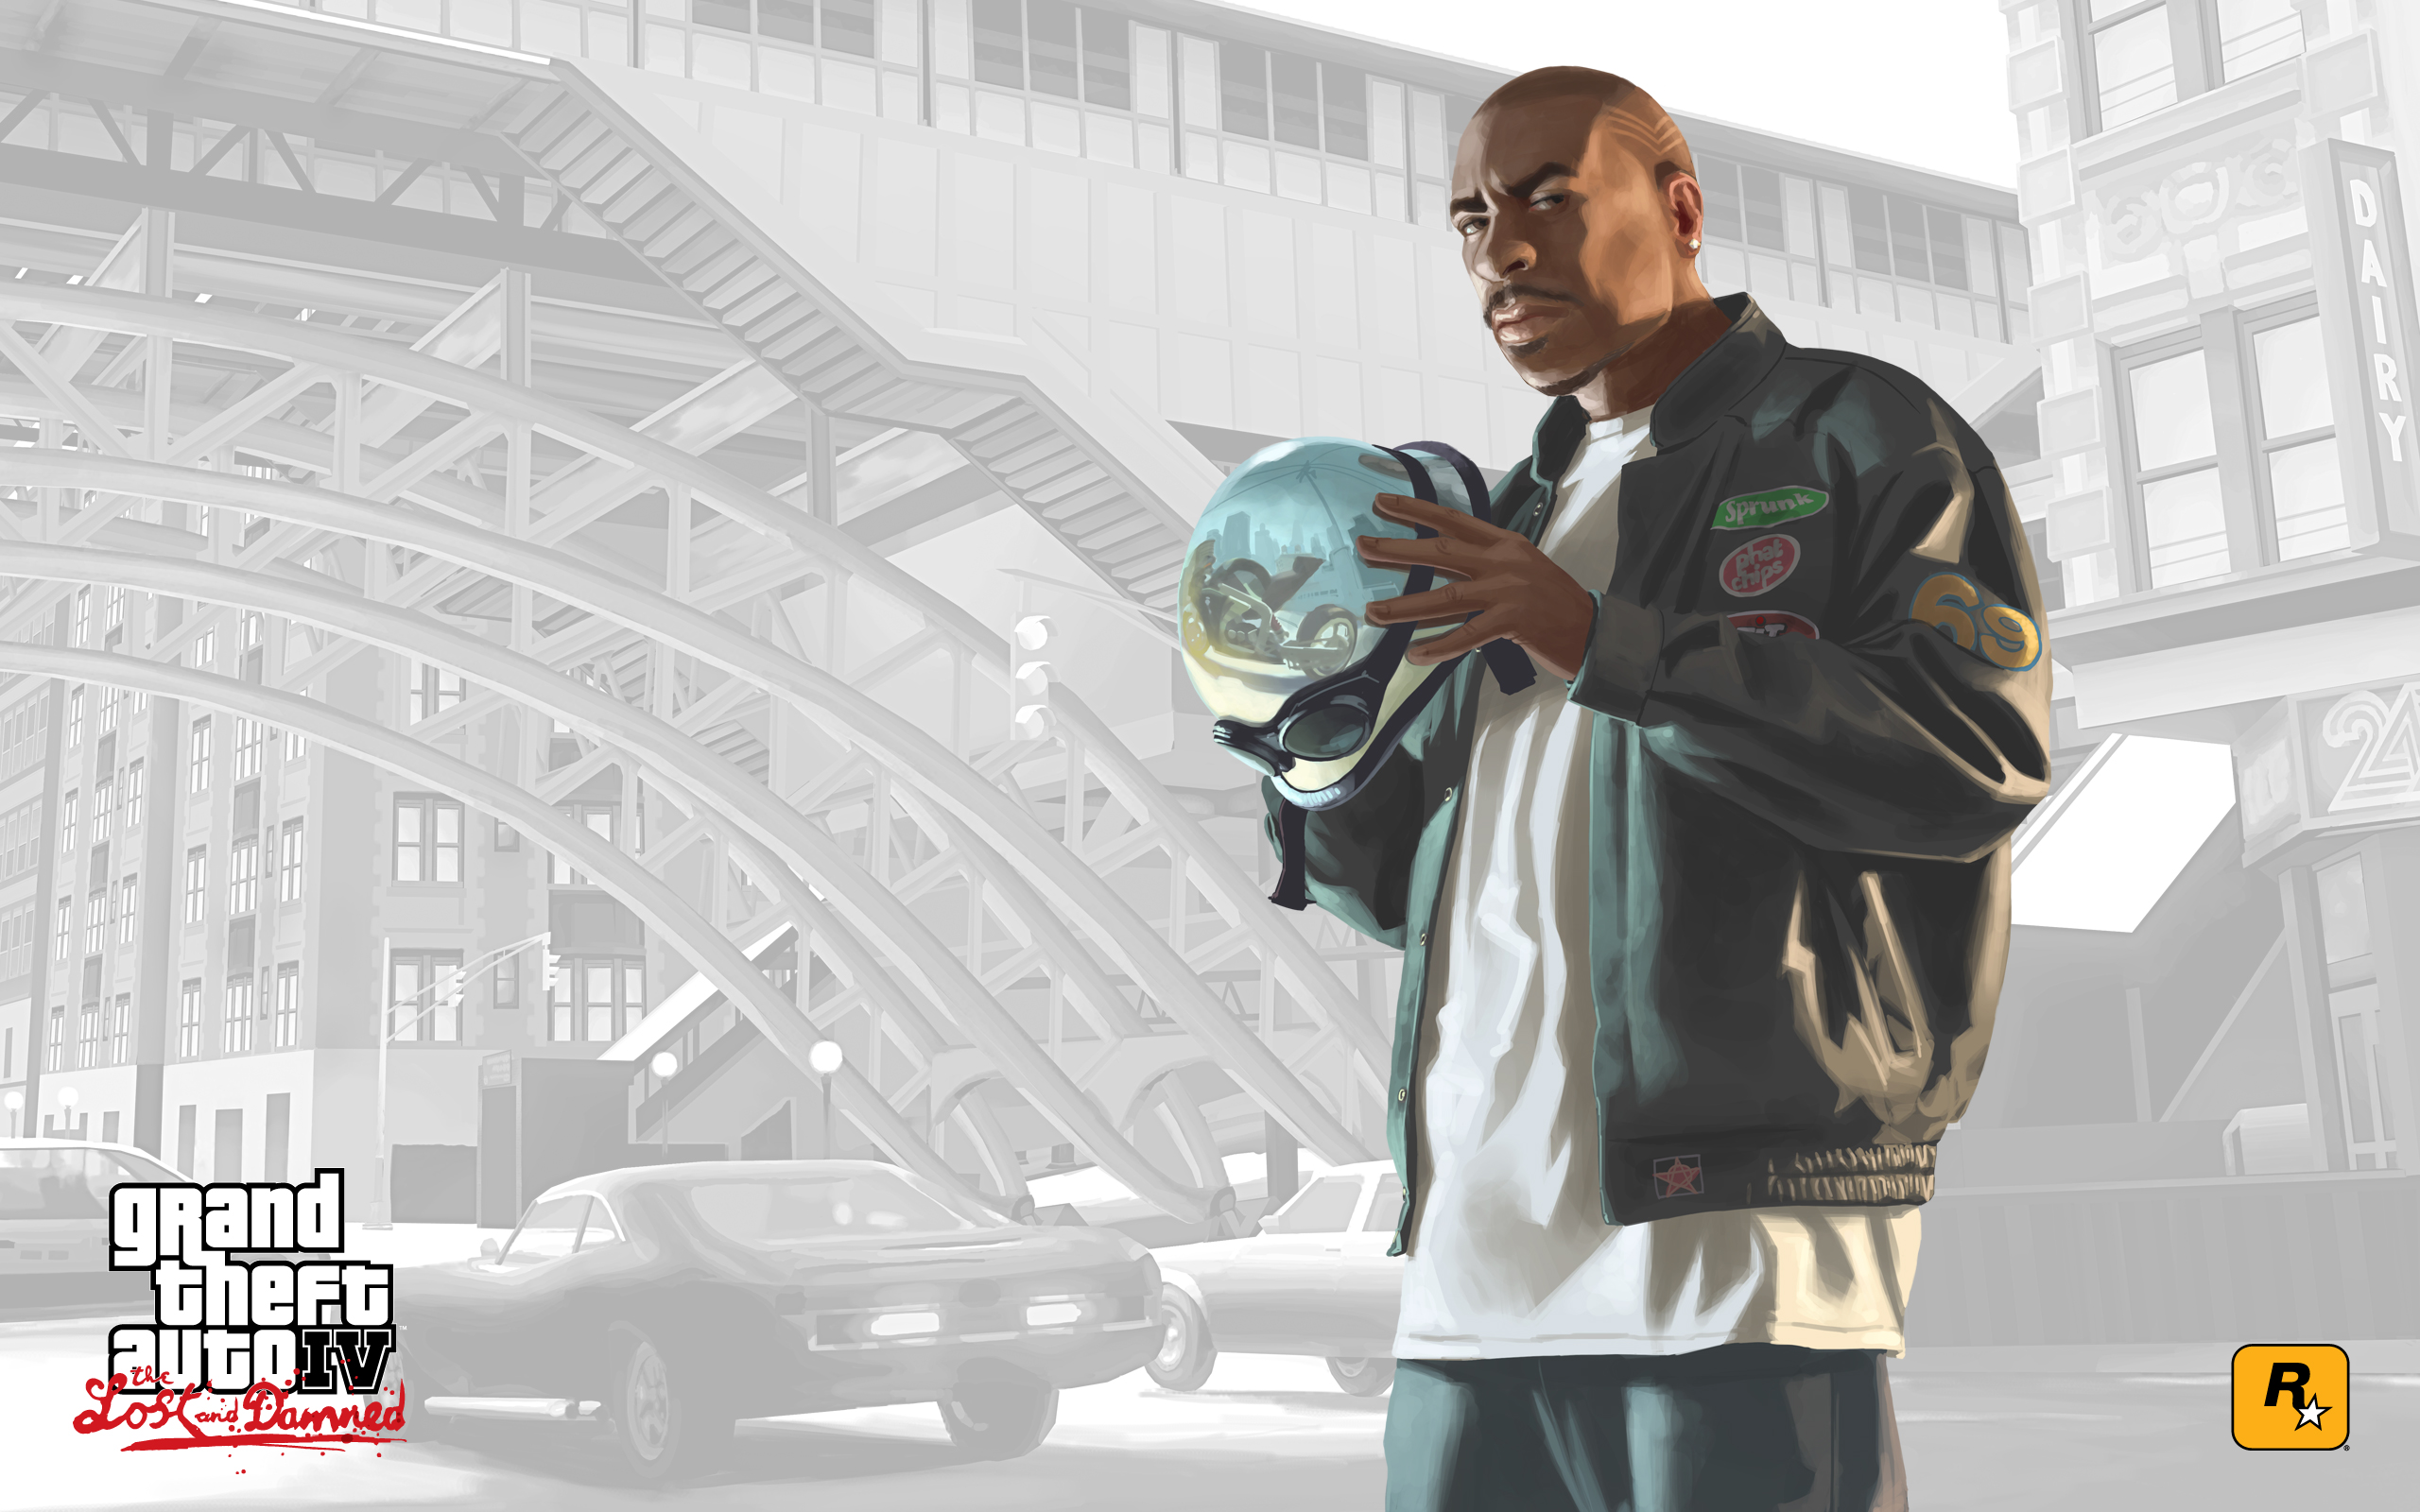 malc wallpaper grand theft auto iv the lost and damned